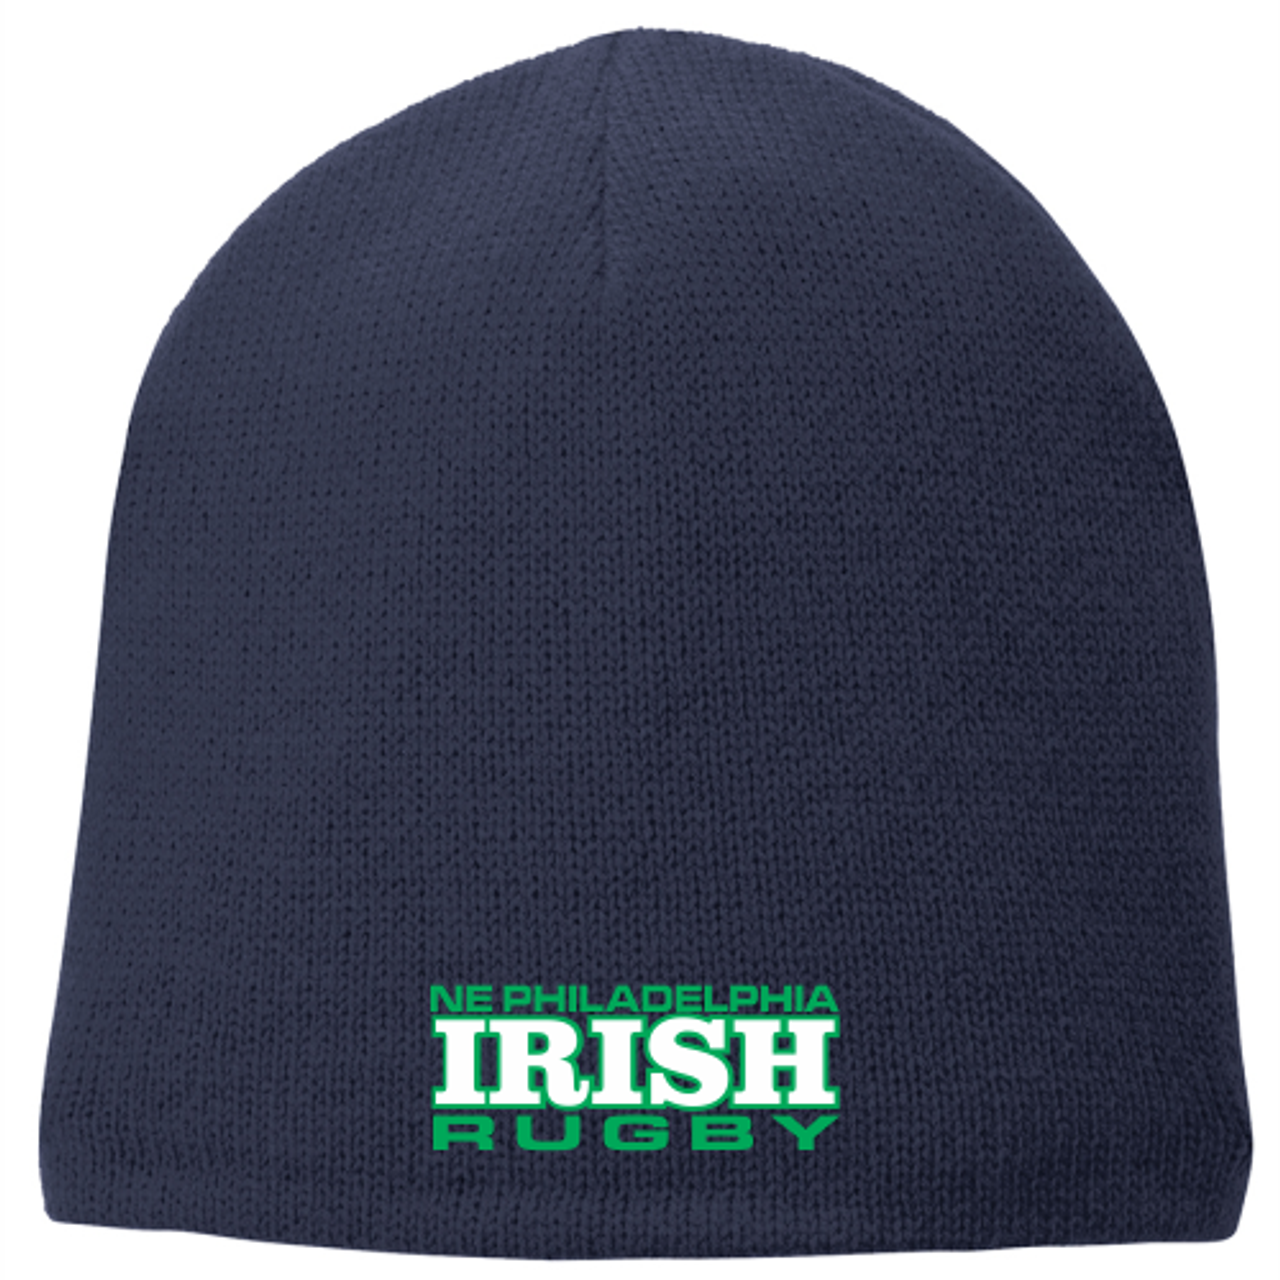 NEP Irish Fleece-Lined Beanie, Navy